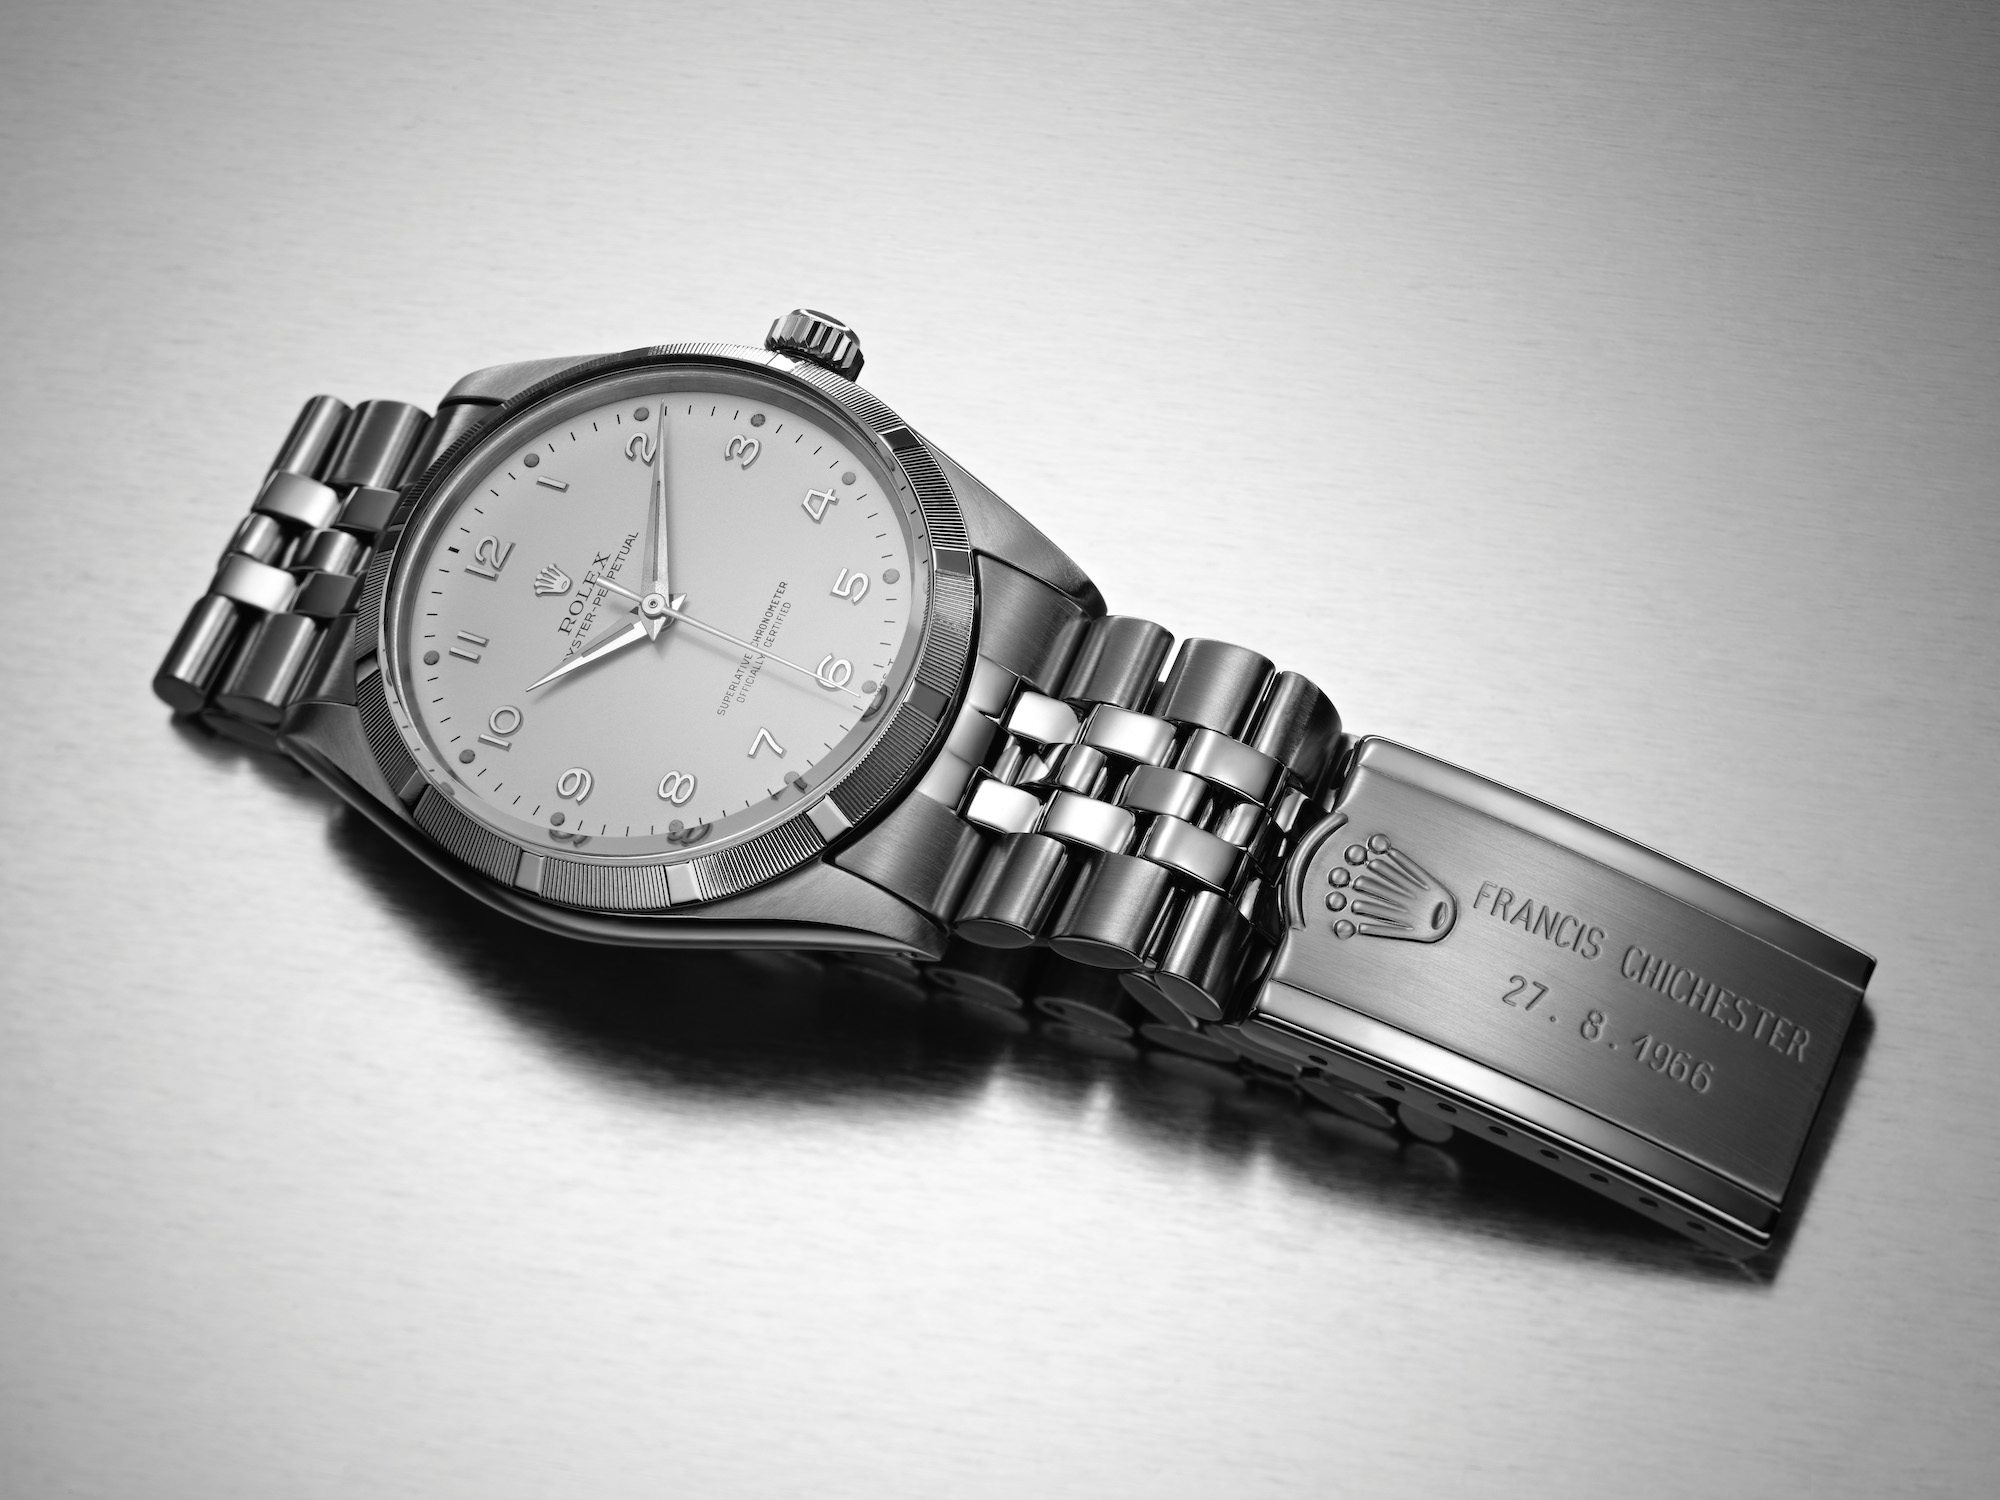 Rolex Francis Chichester